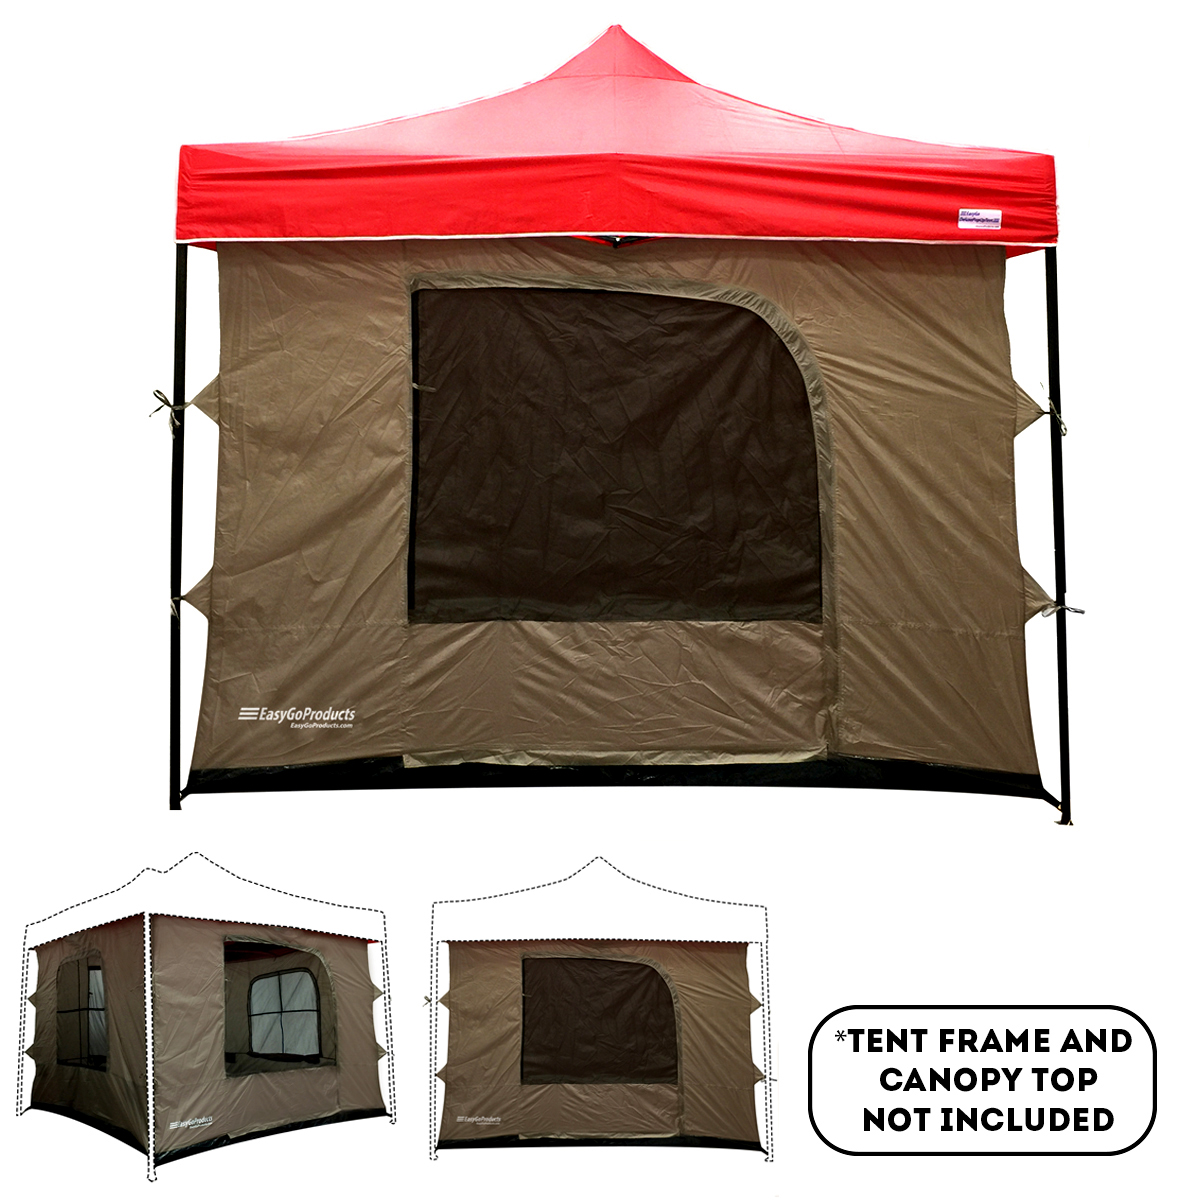 C&ing Tent attaches to any 10u0027x10u0027 Easy Up Pop Up Canopy Tent w/4 Walls Mesh Ceiling PVC Floor 2 Doorsu0026 4 Windows - Walmart.com  sc 1 st  Walmart & Camping Tent attaches to any 10u0027x10u0027 Easy Up Pop Up Canopy Tent w ...